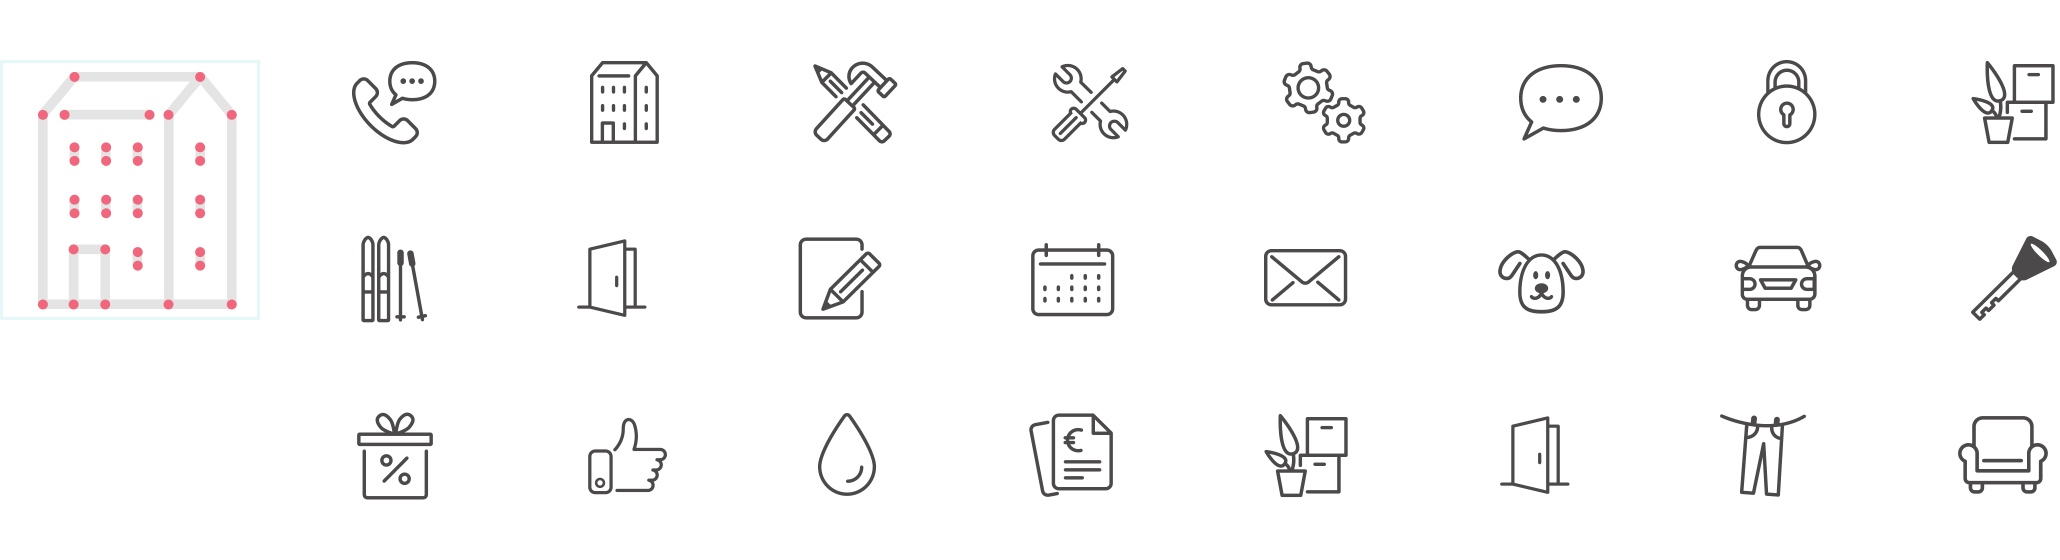 A custom icon set was created including 100+ individual icons.